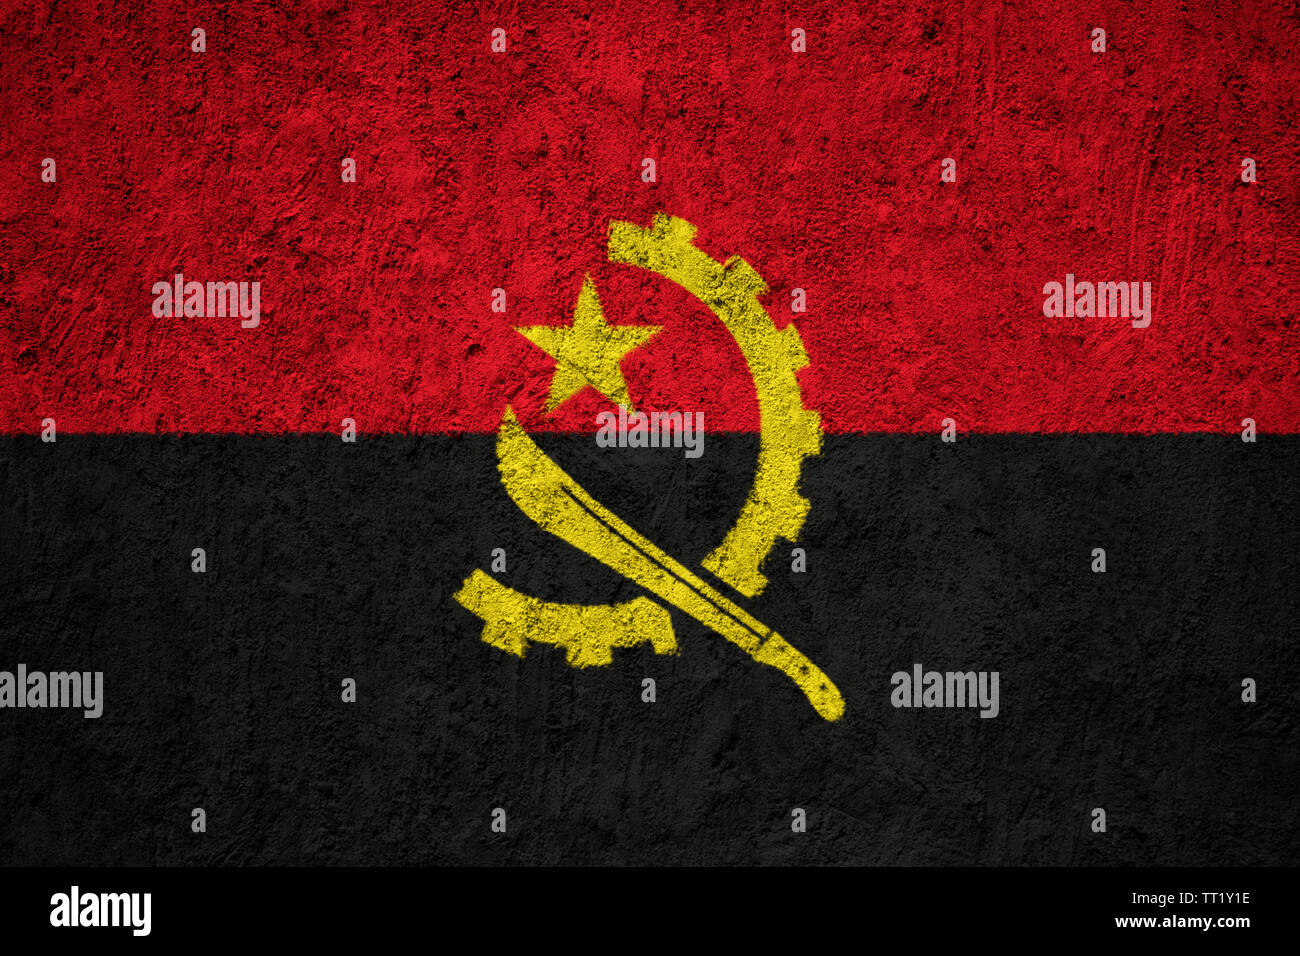 Angola flag painted on the cracked grunge concrete wall Stock Photo